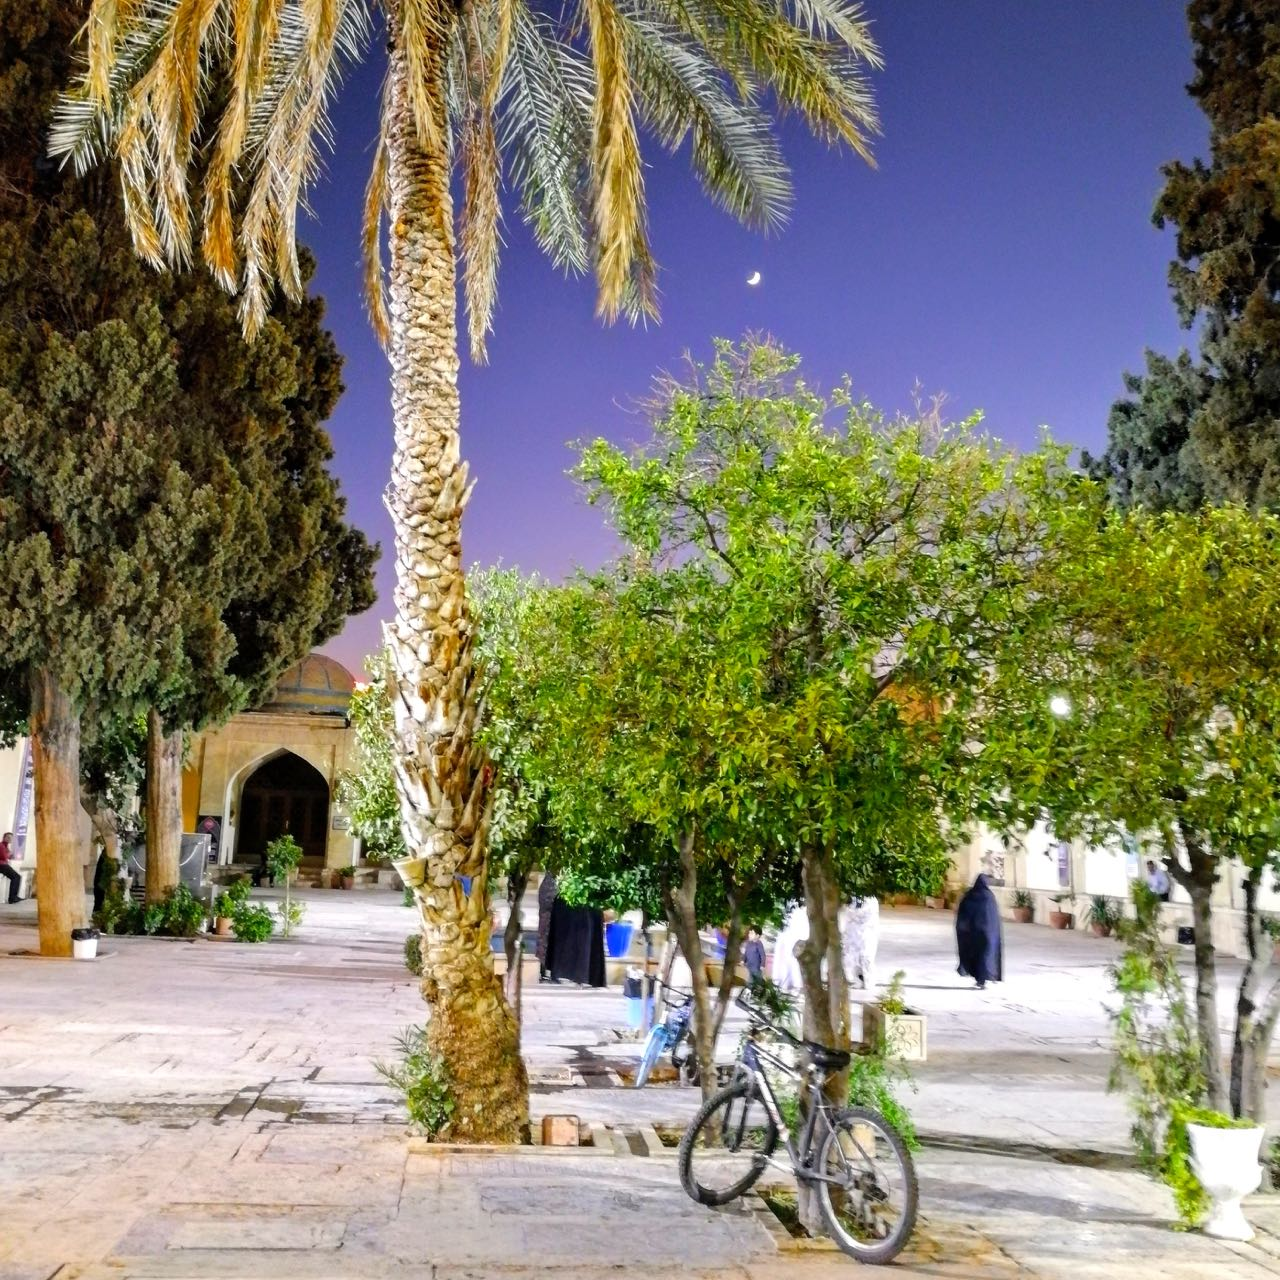 Iran-Shiraz-imamzadeh-evening.jpg